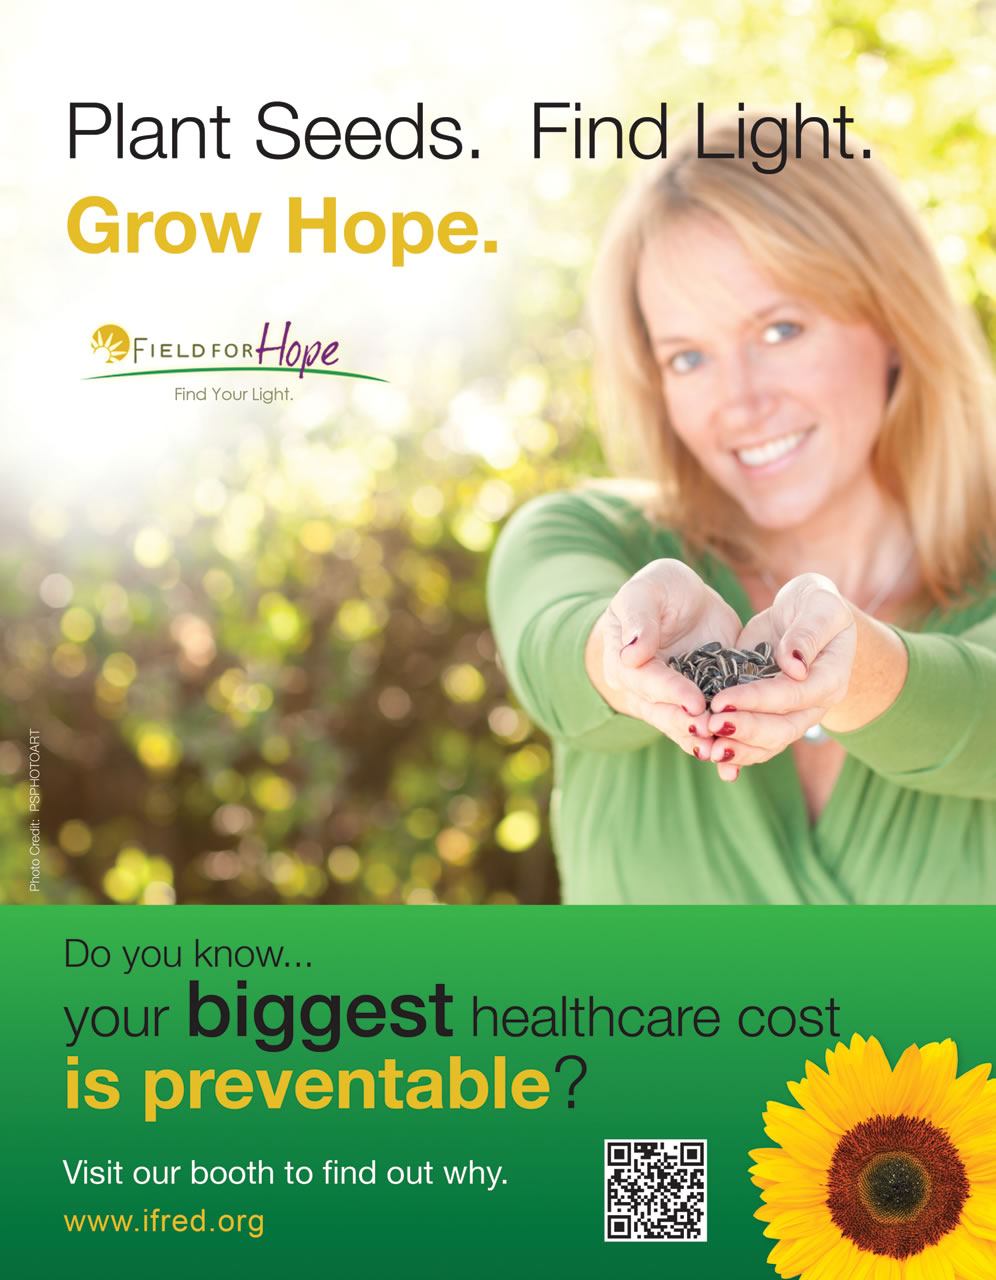 Advertisement for iFred, Field for Hope - Ginger Wagoner, Photographer, Photosynthesis